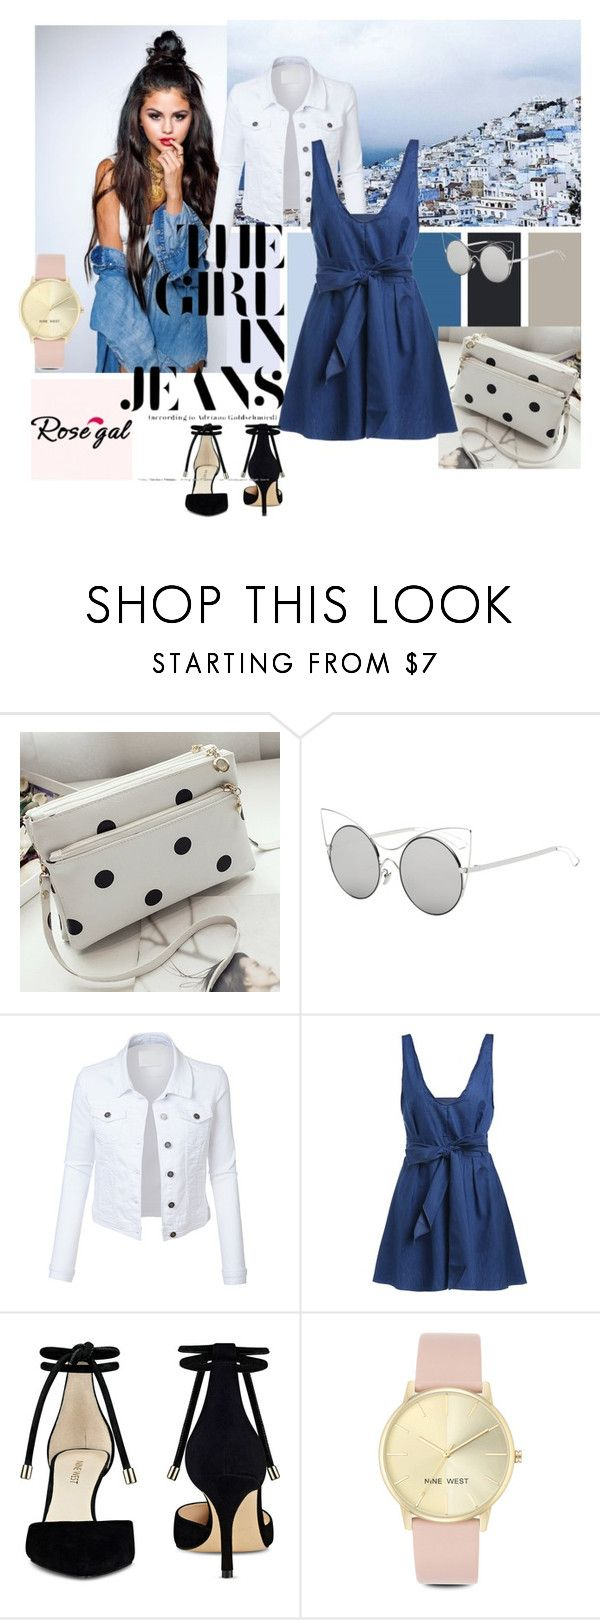 """""""Rosegal"""" by aidaaa1992 ❤ liked on Polyvore featuring LE3NO and Nine West"""